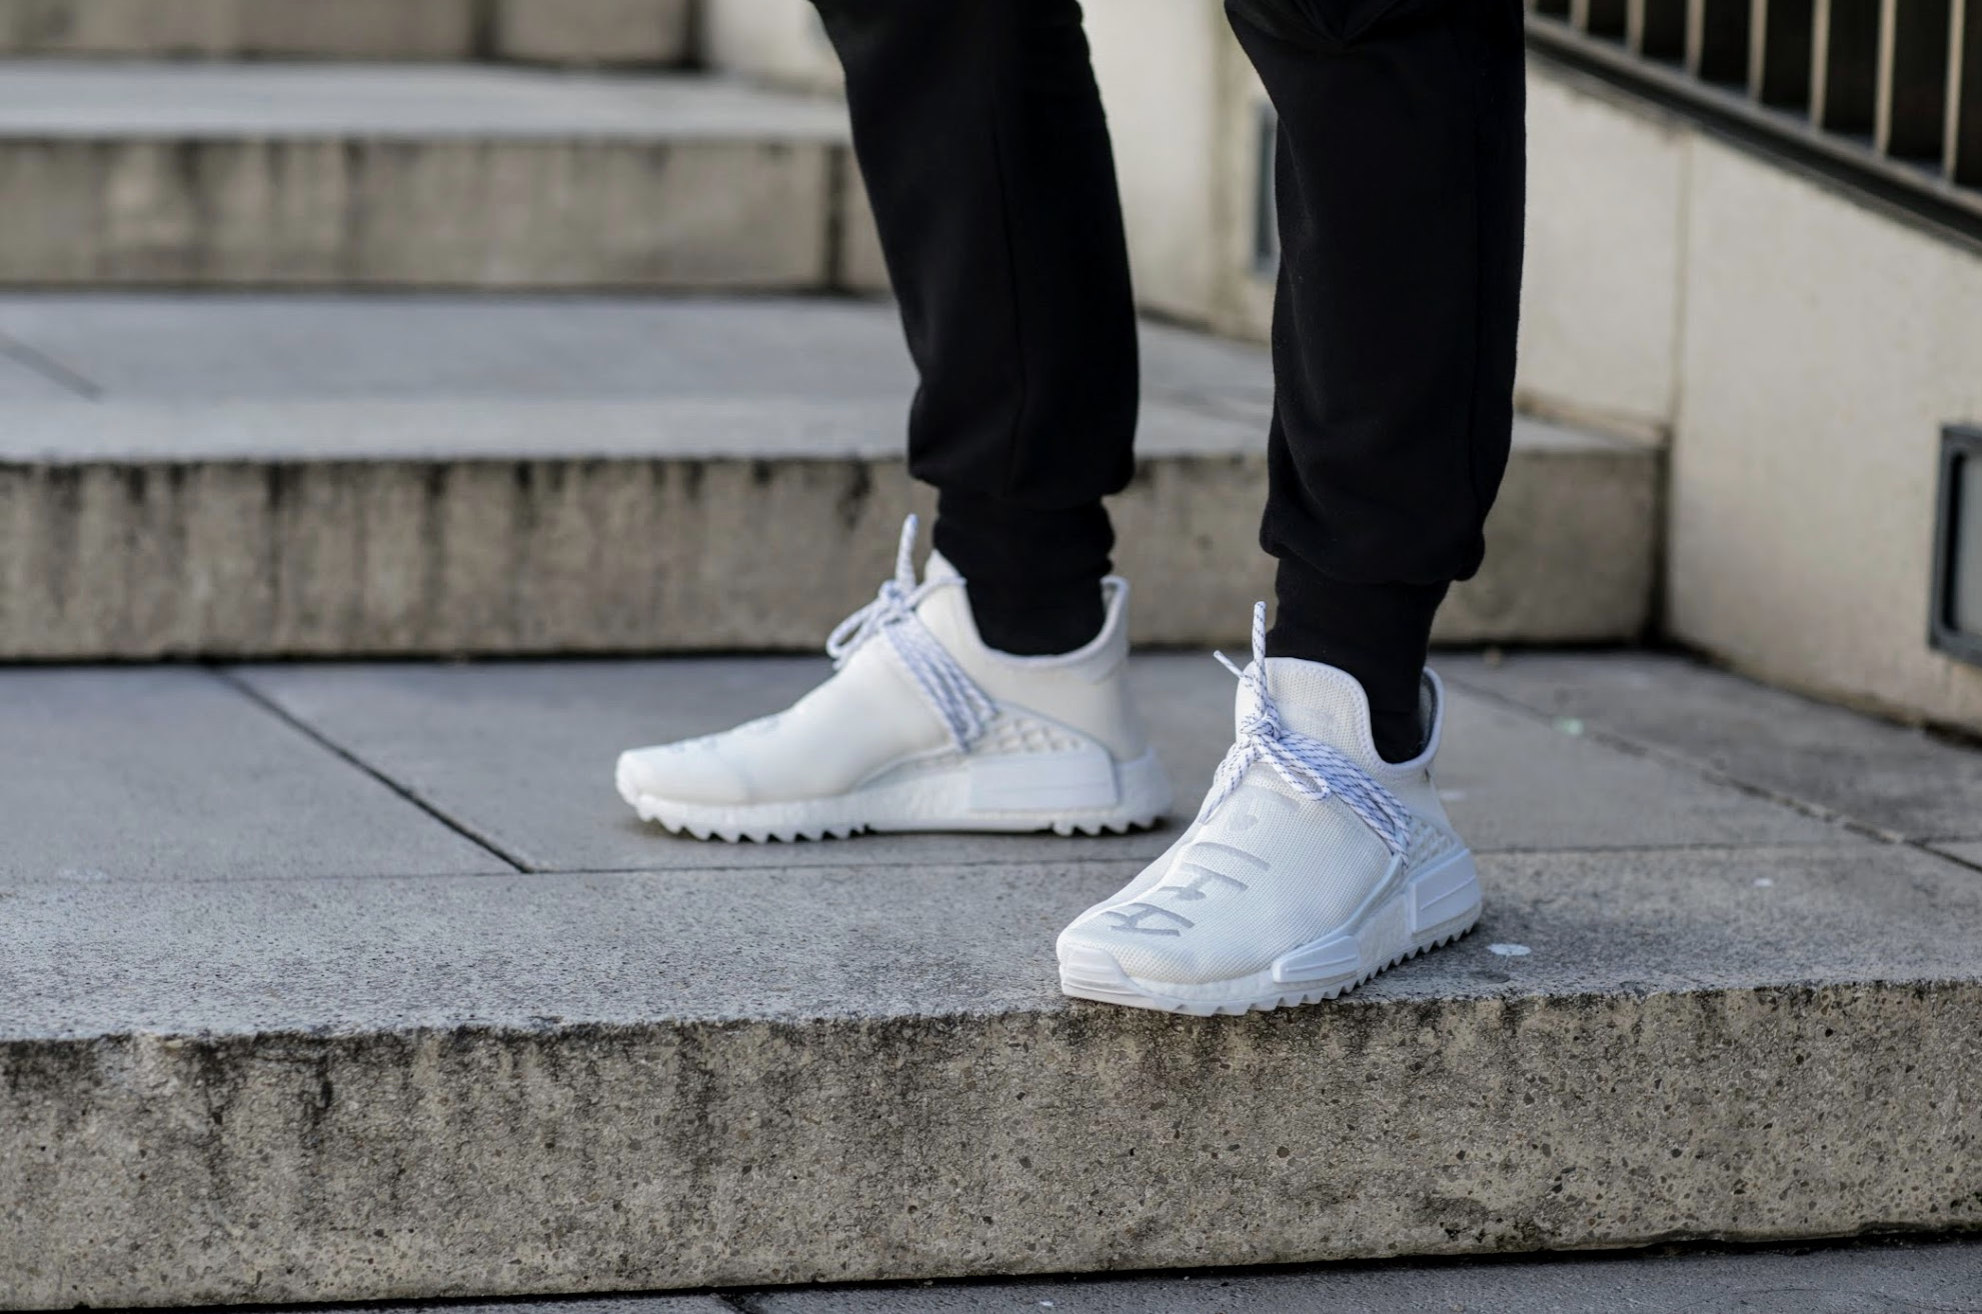 buy popular 6f132 15762 Pharrell x adidas NMD Hu Blank Canvas Review - Kingsdown ...